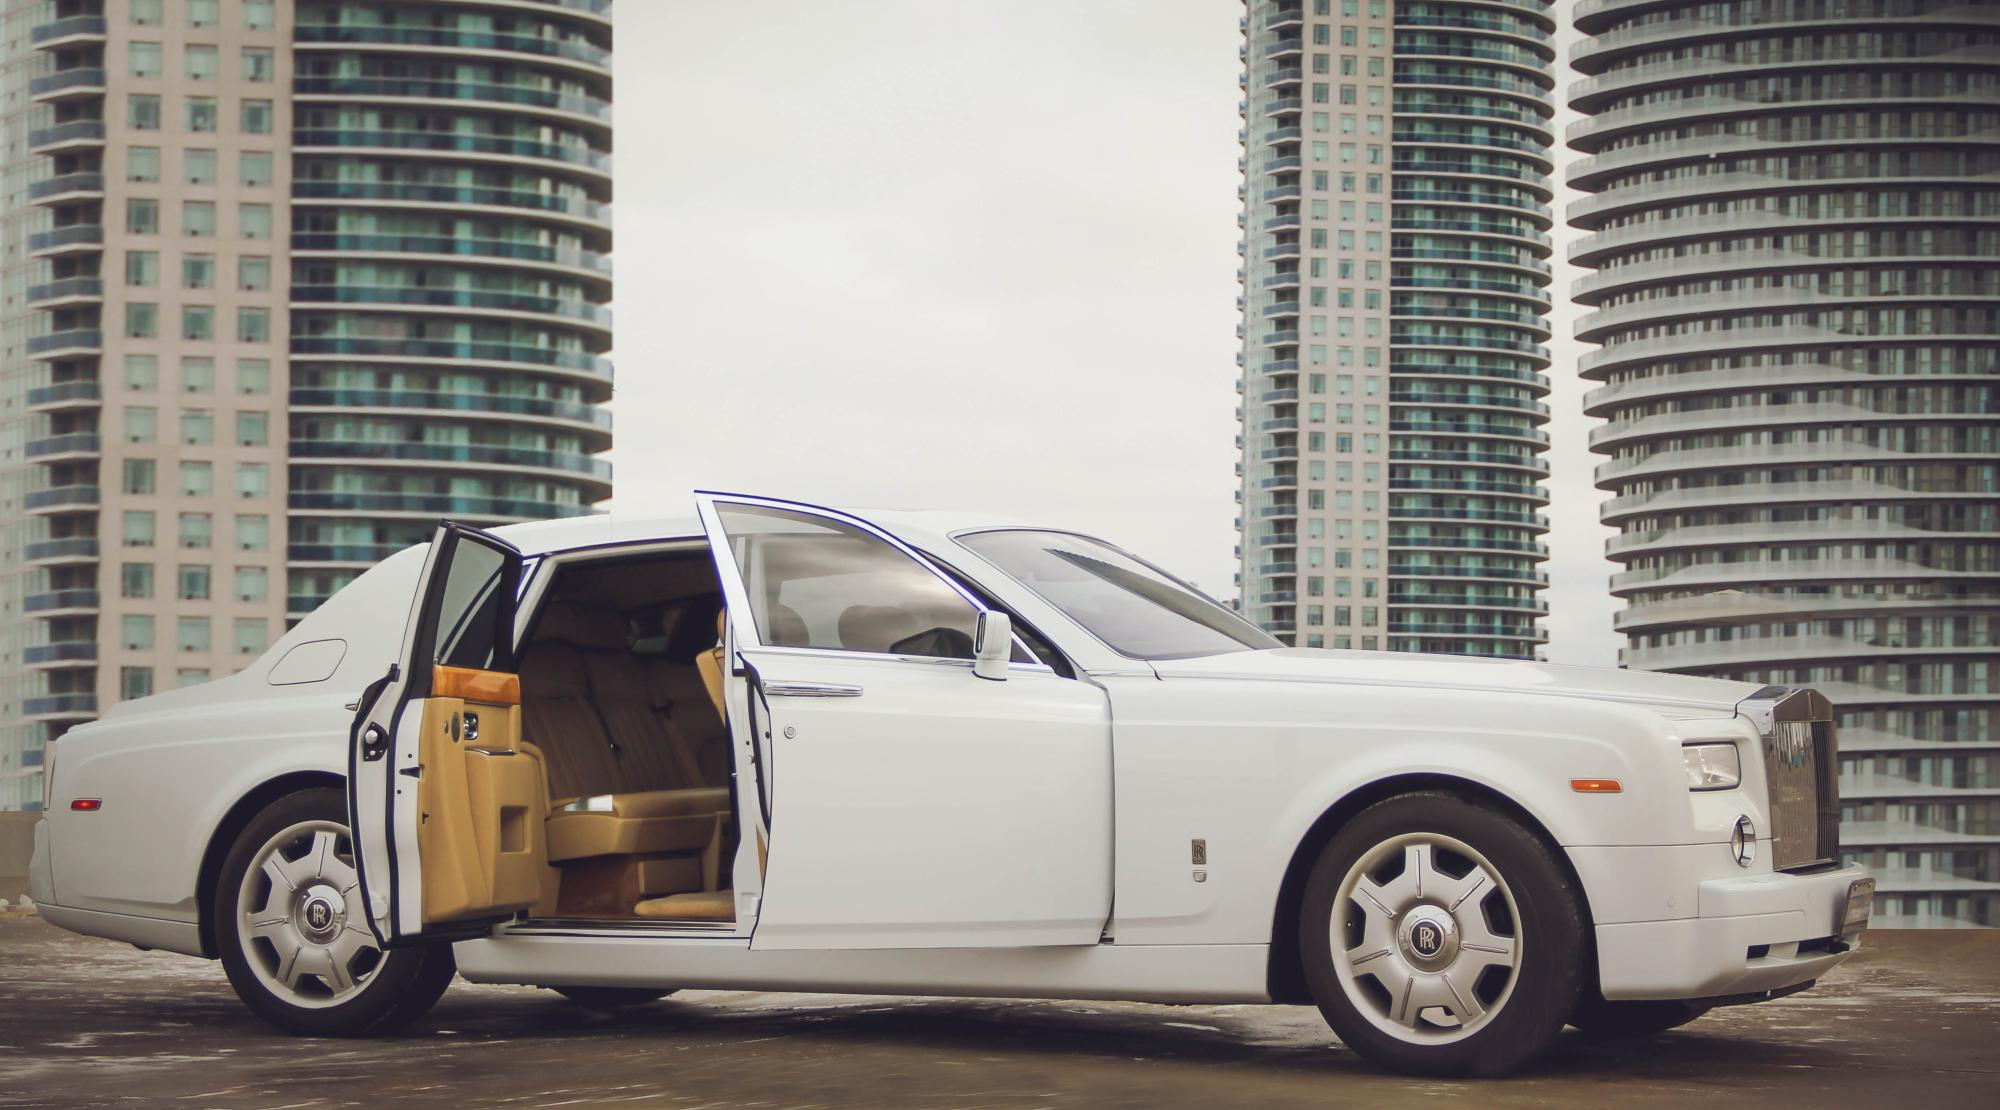 Phantom Door Amp Iconic Classic Rolls Royce Phantom I